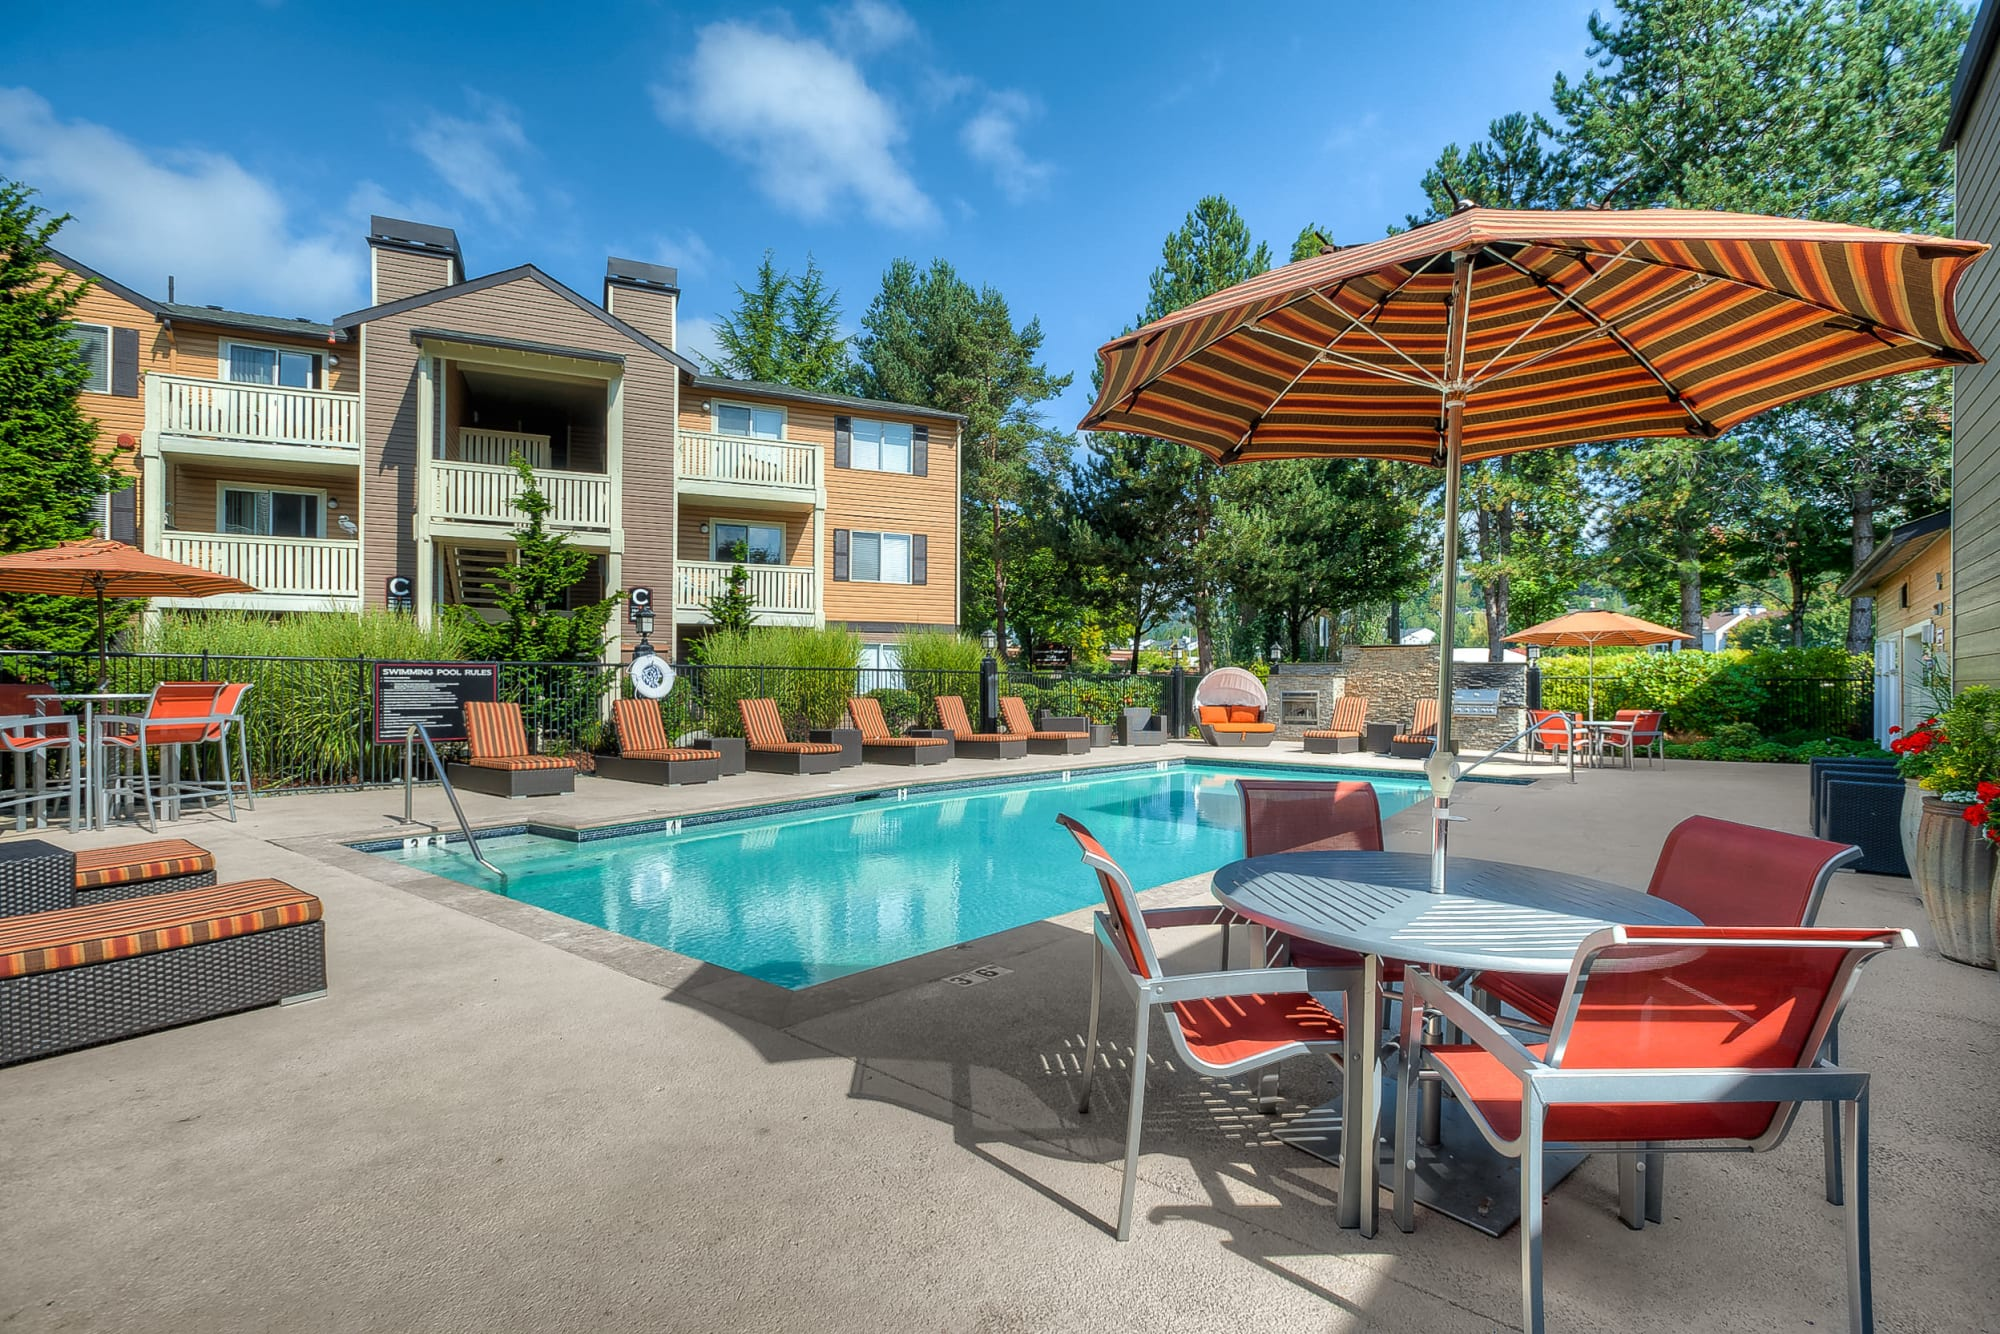 Sparking pool view with lounges, tables, umbrellas at Newport Crossing Apartments